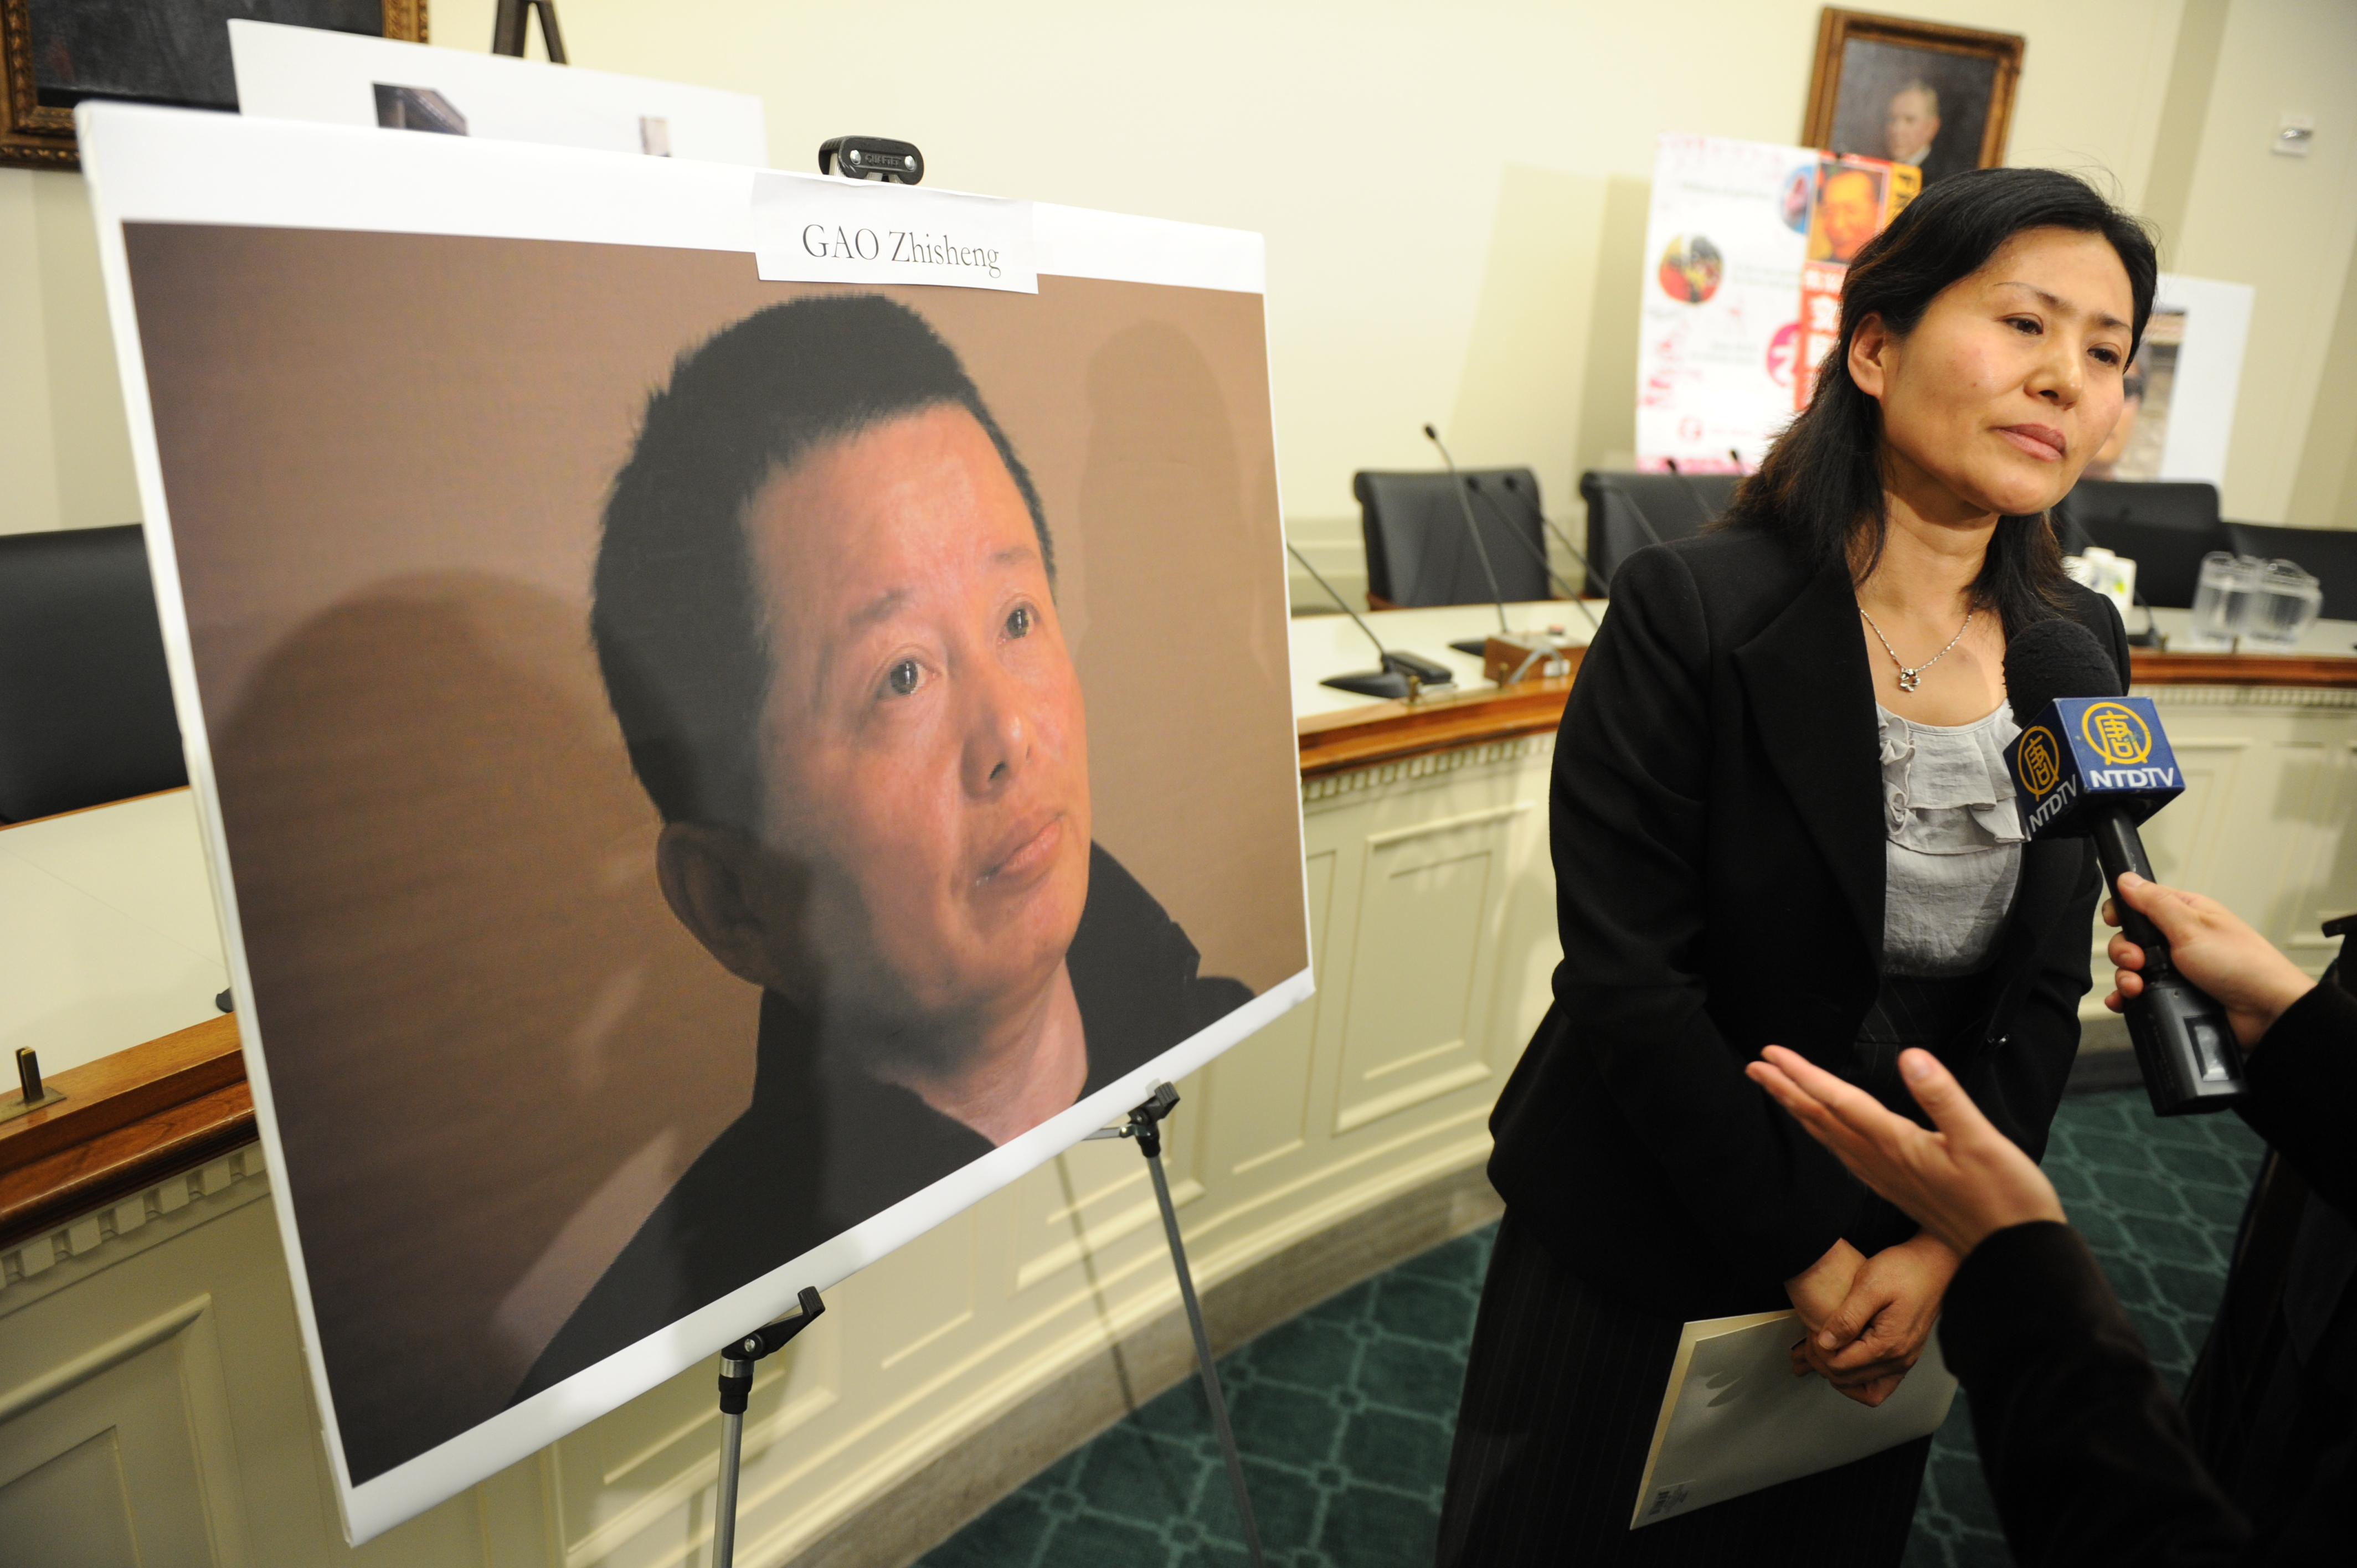 Renowned Human Rights Lawyer Gao Zhisheng Disappeared, Says Wife